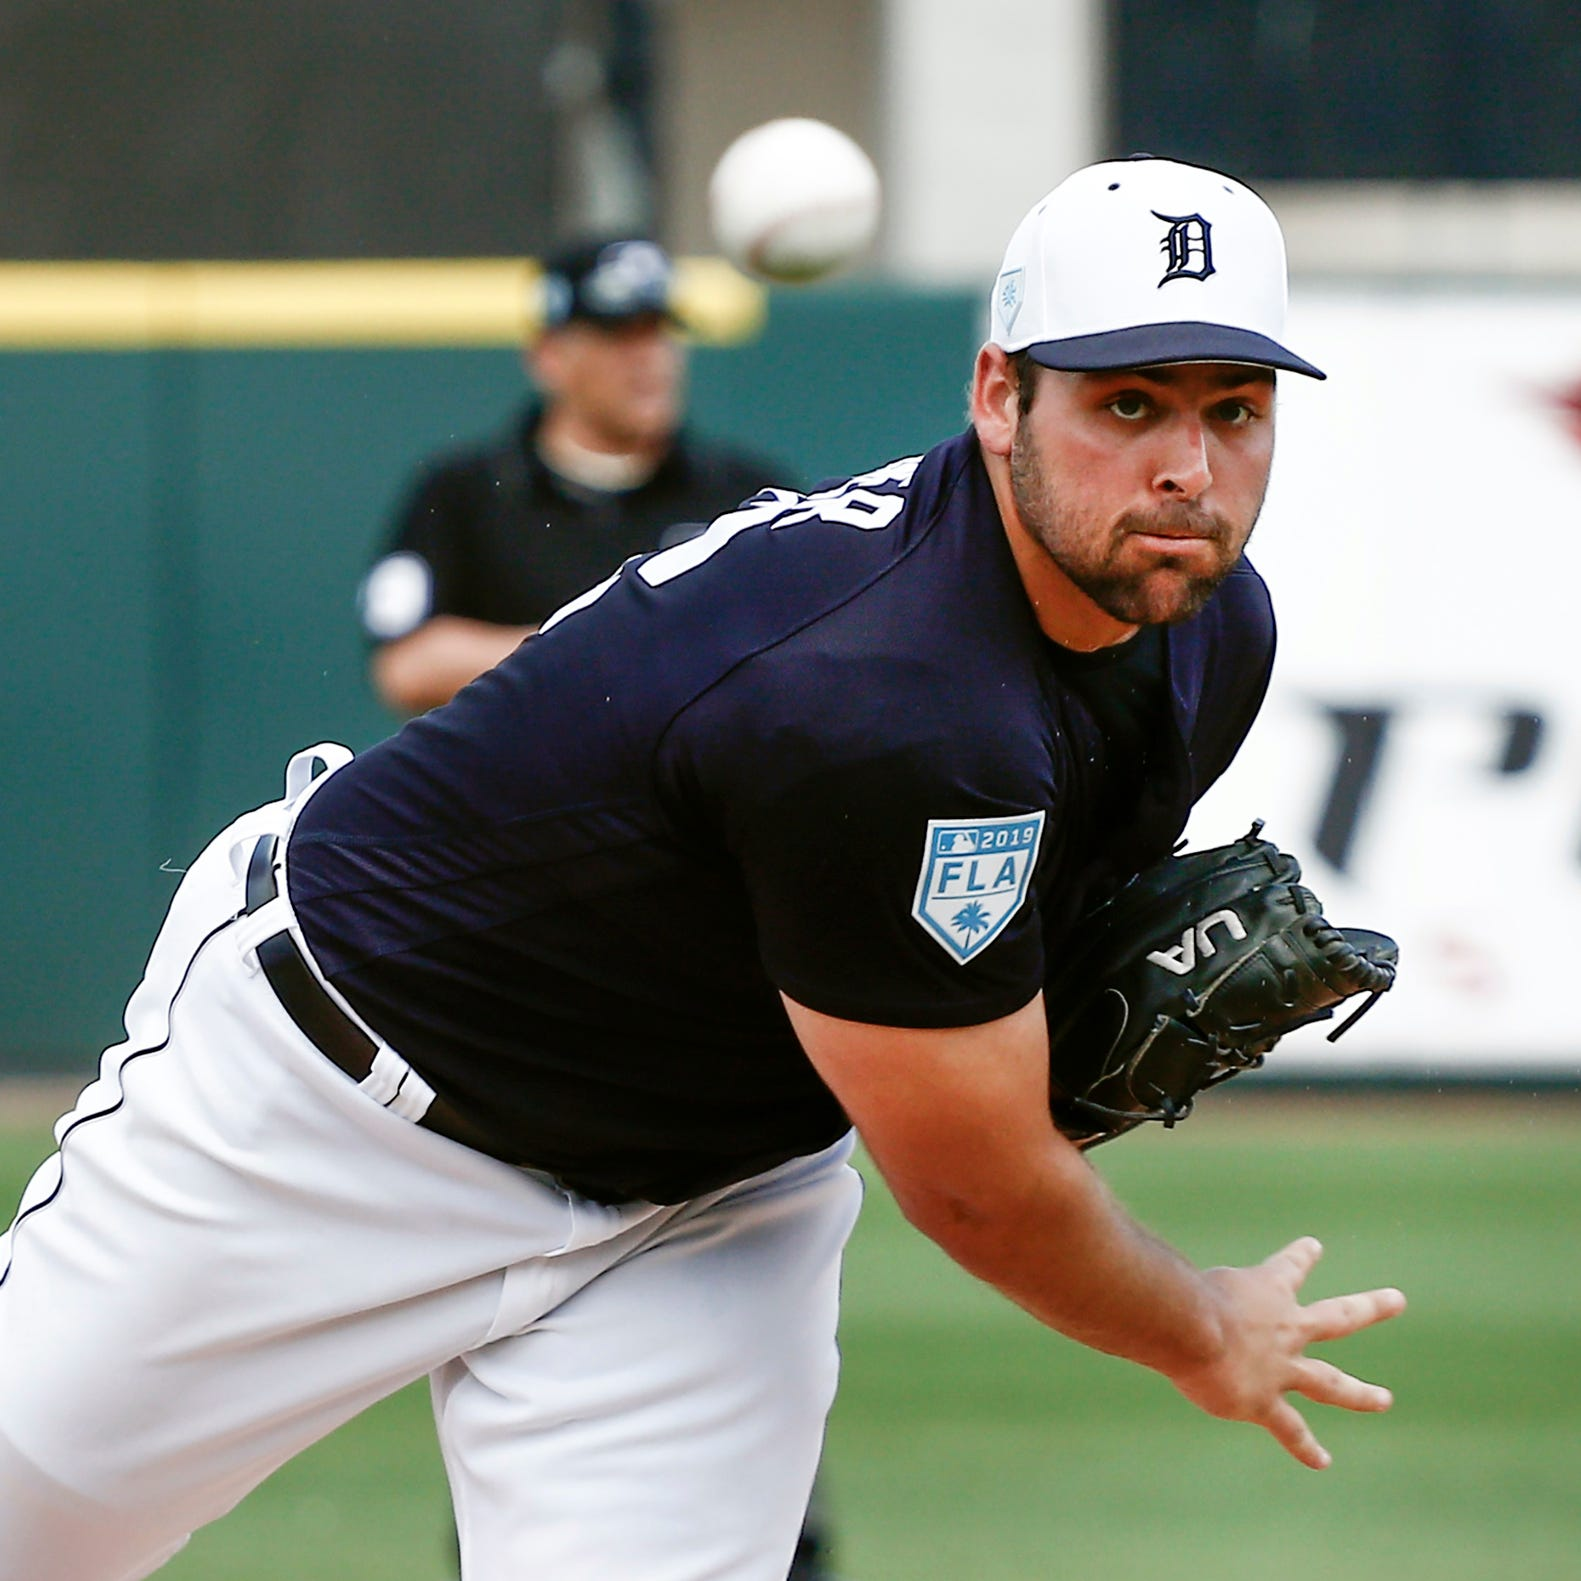 Detroit Tigers' Michael Fulmer needs Tommy John surgery, says Dr. Andrews